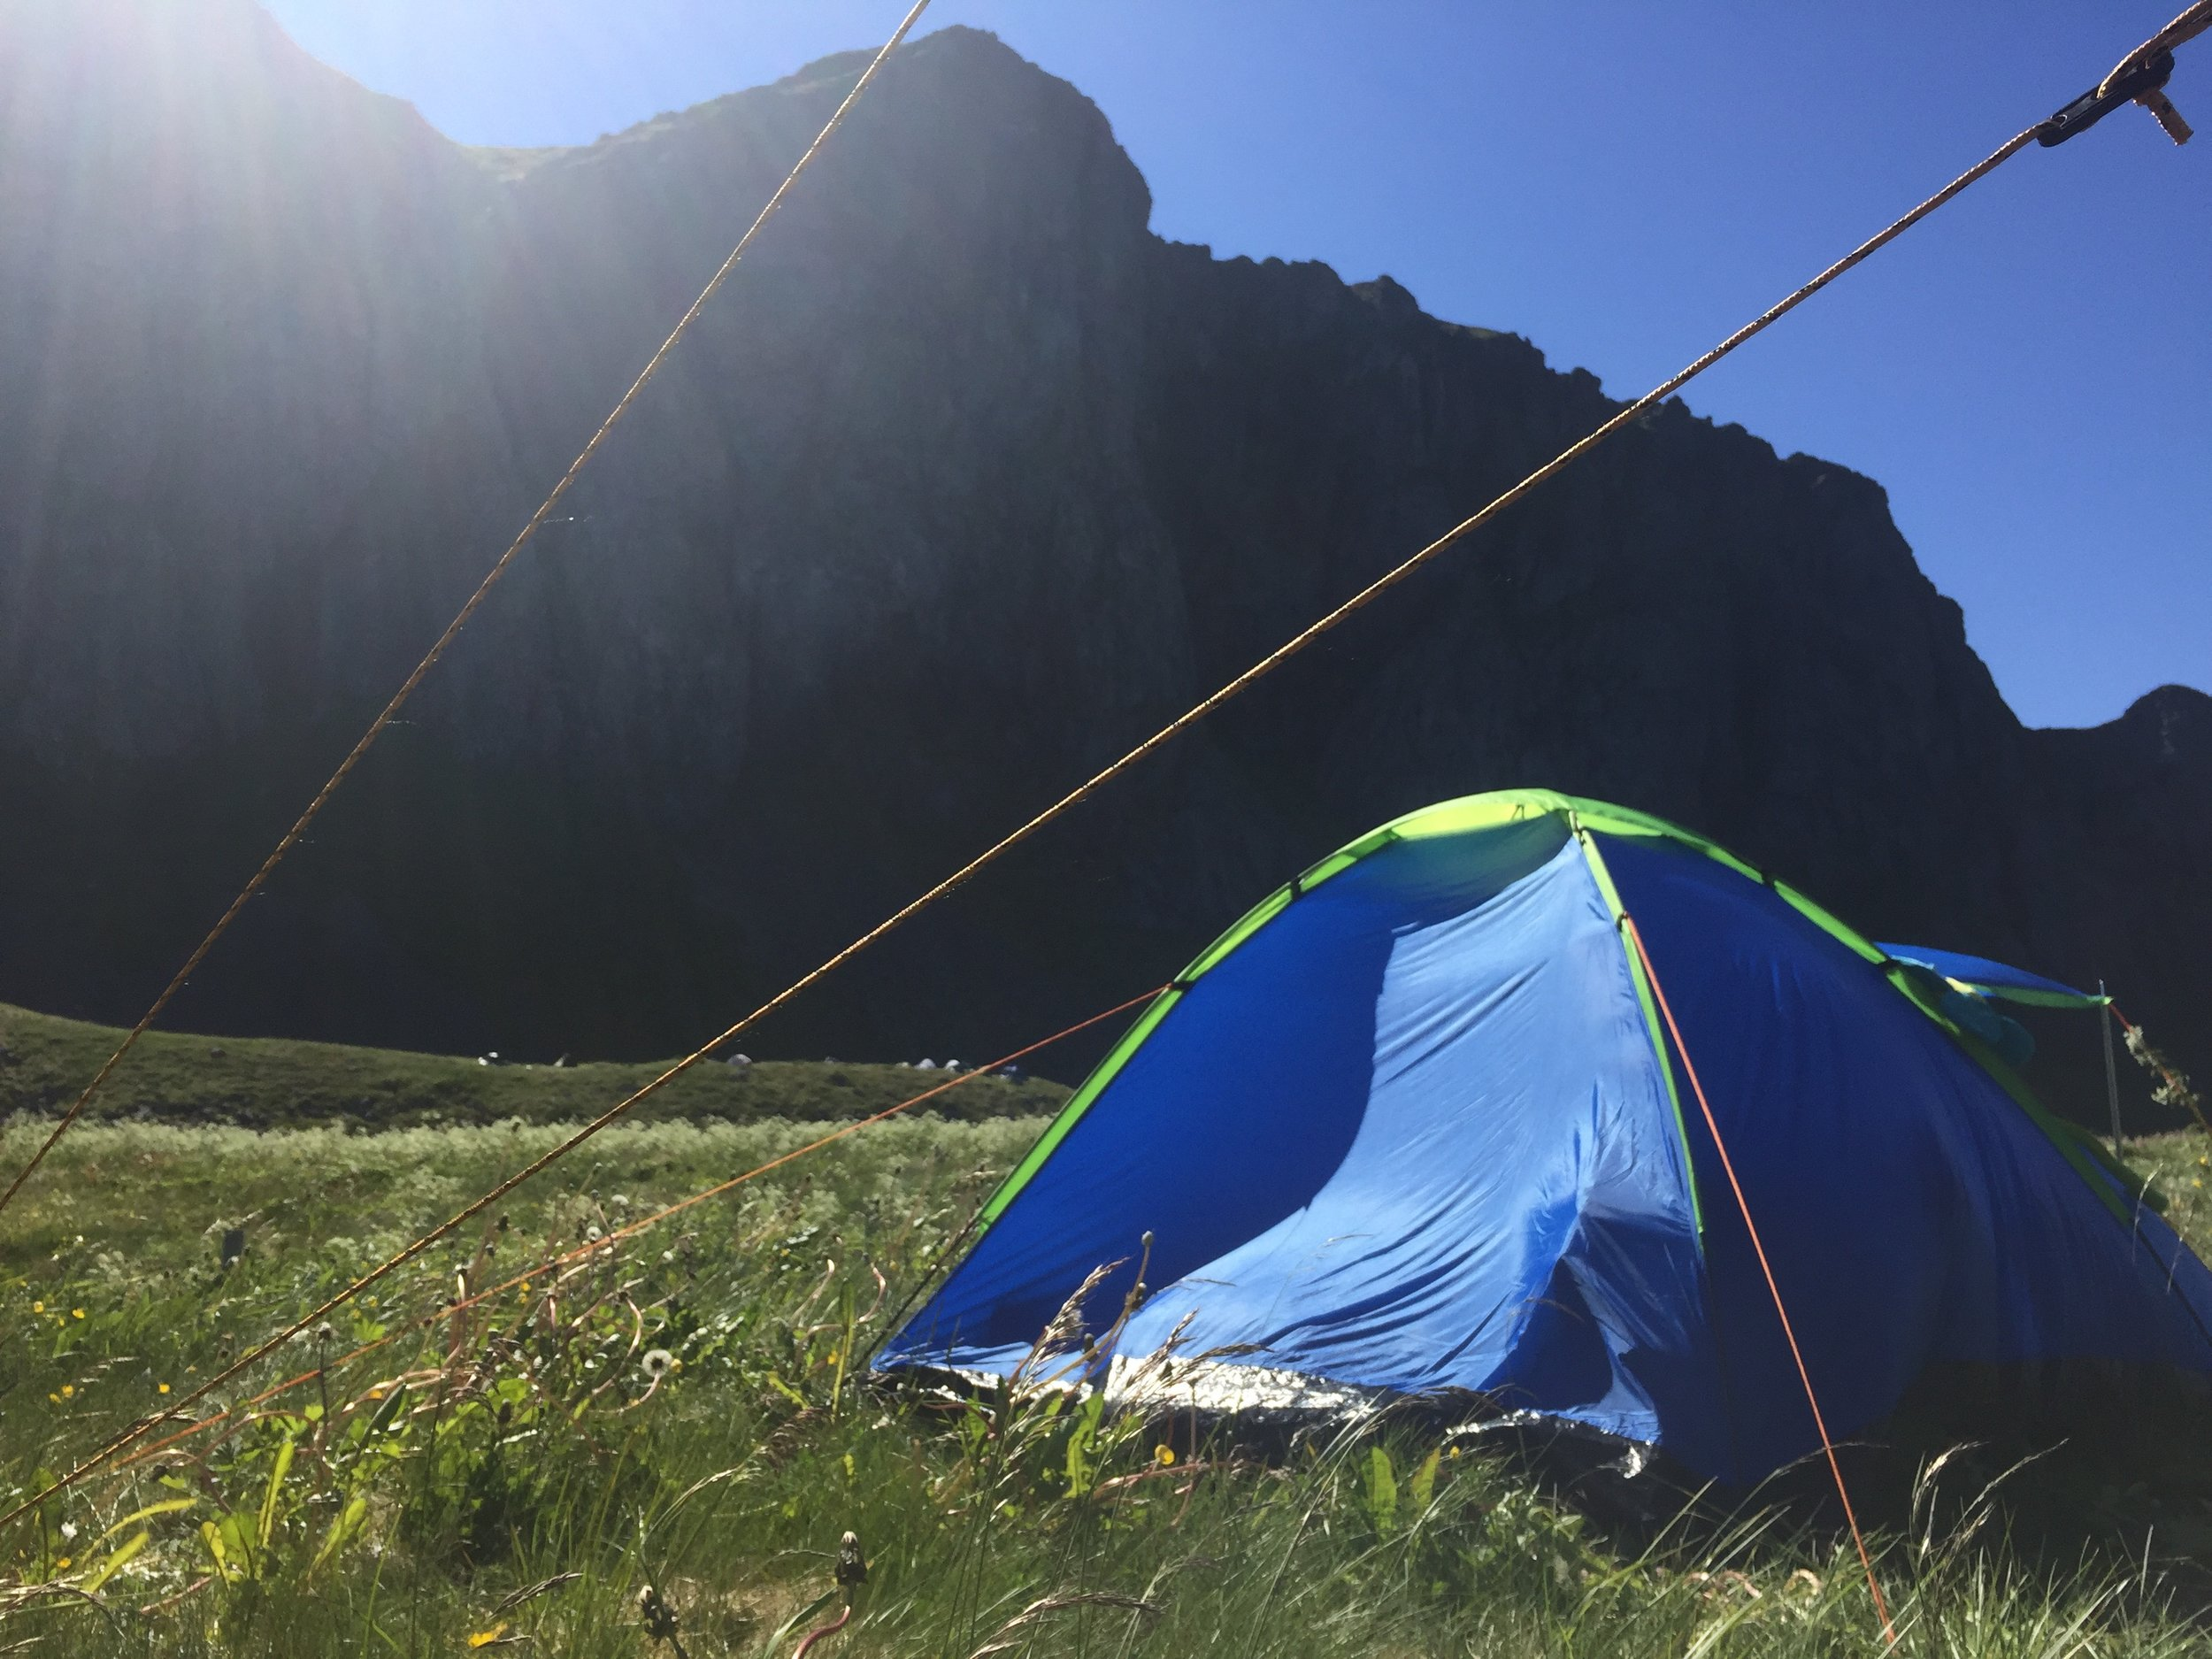 Please buy an expensive tent next time.